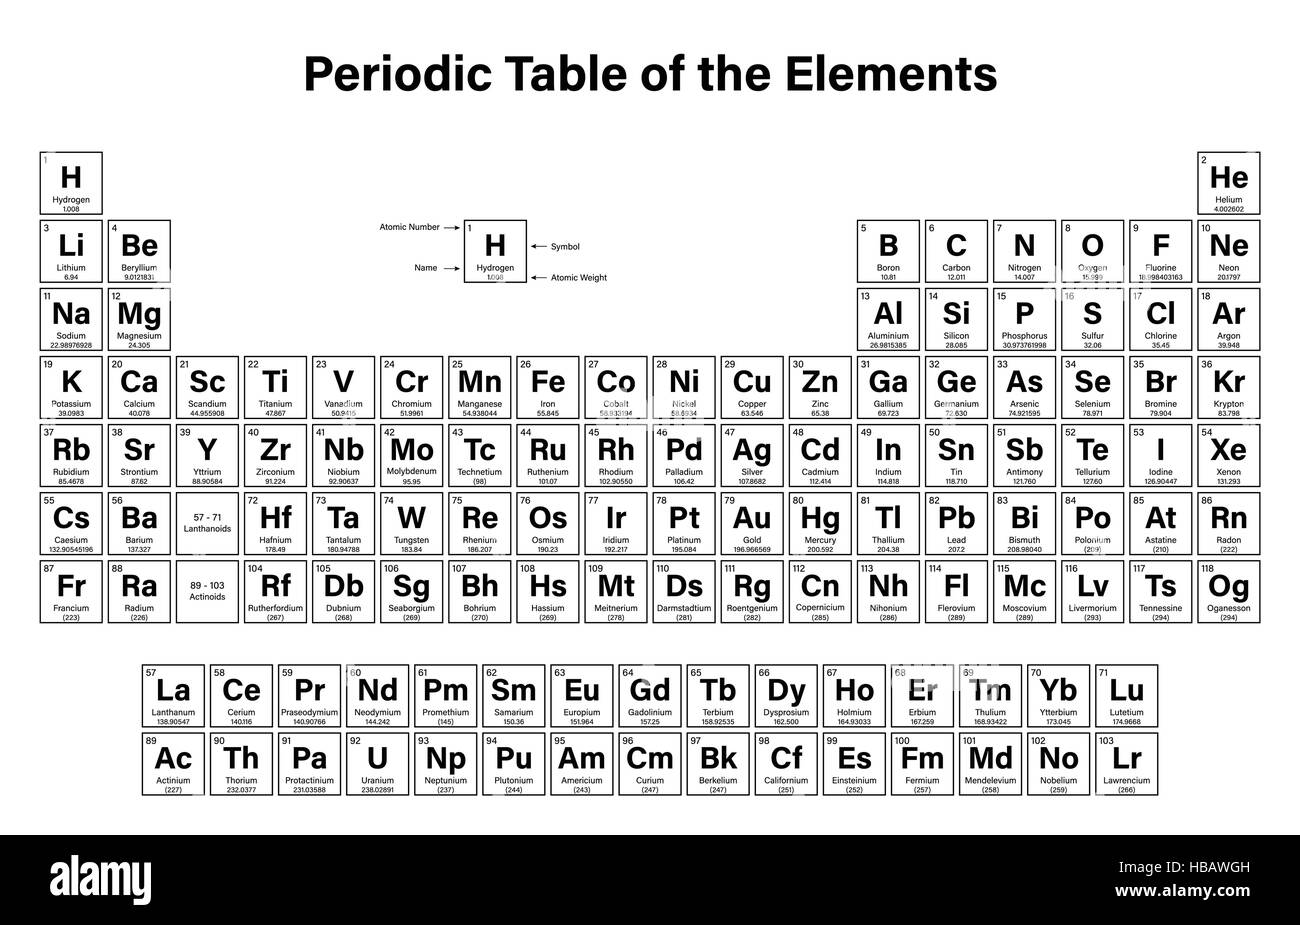 Tc on periodic table gallery periodic table images tc on periodic table choice image periodic table images tc on periodic table choice image periodic gamestrikefo Image collections